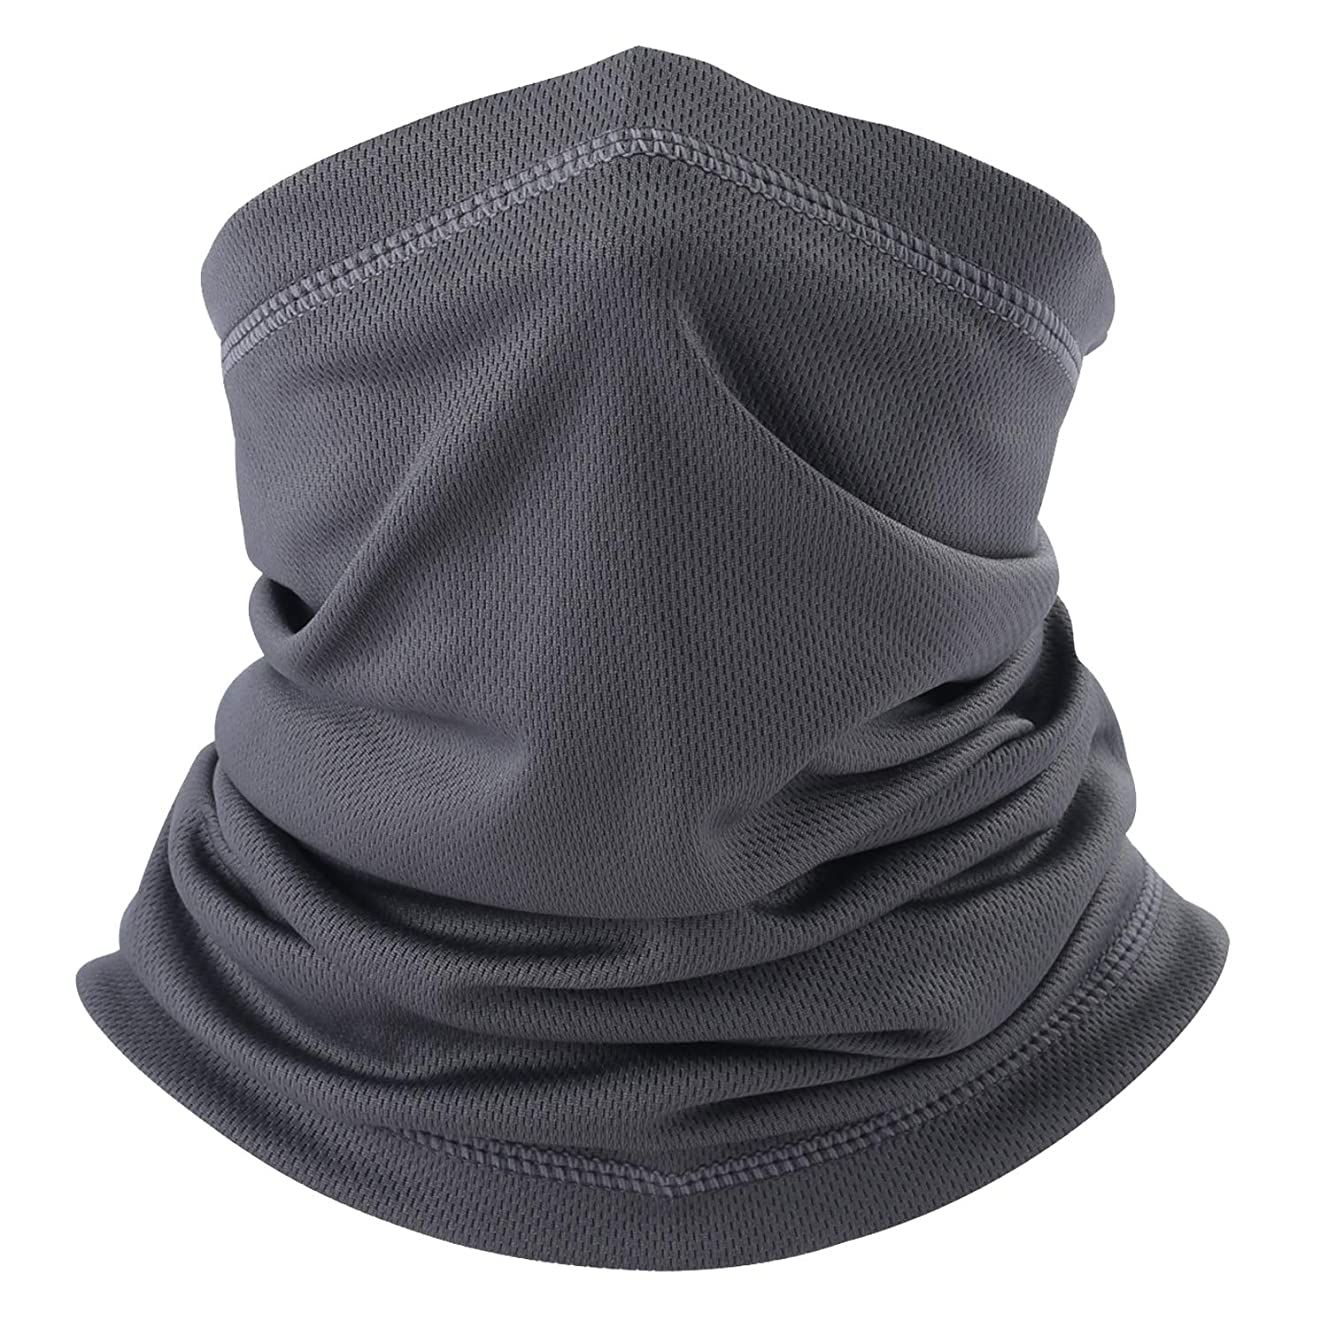 LONGLONG Summer Face Scarf Mask - Dust, Sun Protection Neck Gaiter Thin Windproof, Breathable Fishing Running Cycling Cool Bandana